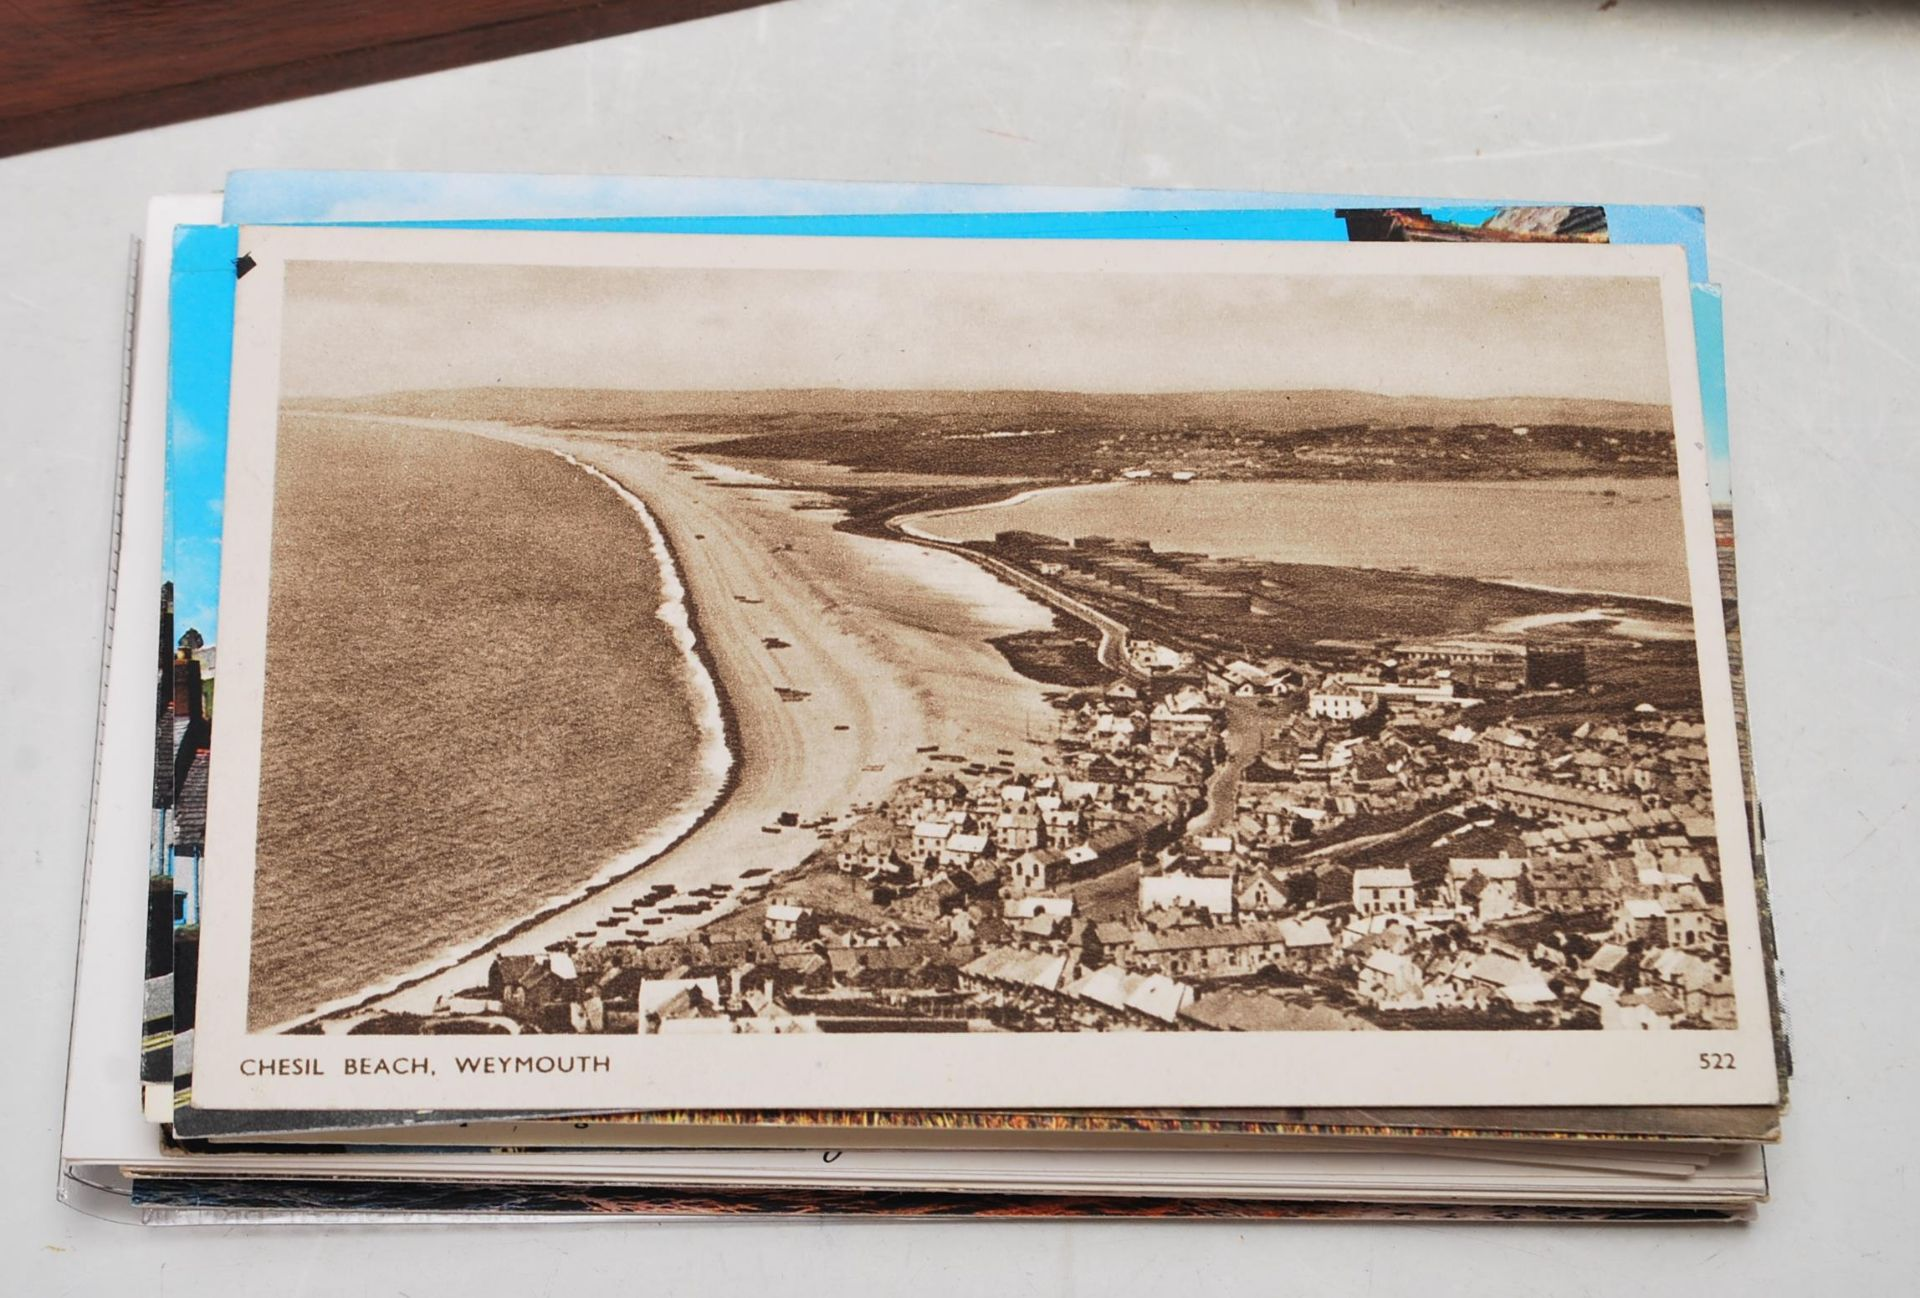 COLLECTION OF VINTAGE POSTCARDS - CORNWALL BRISTOL - Image 2 of 6